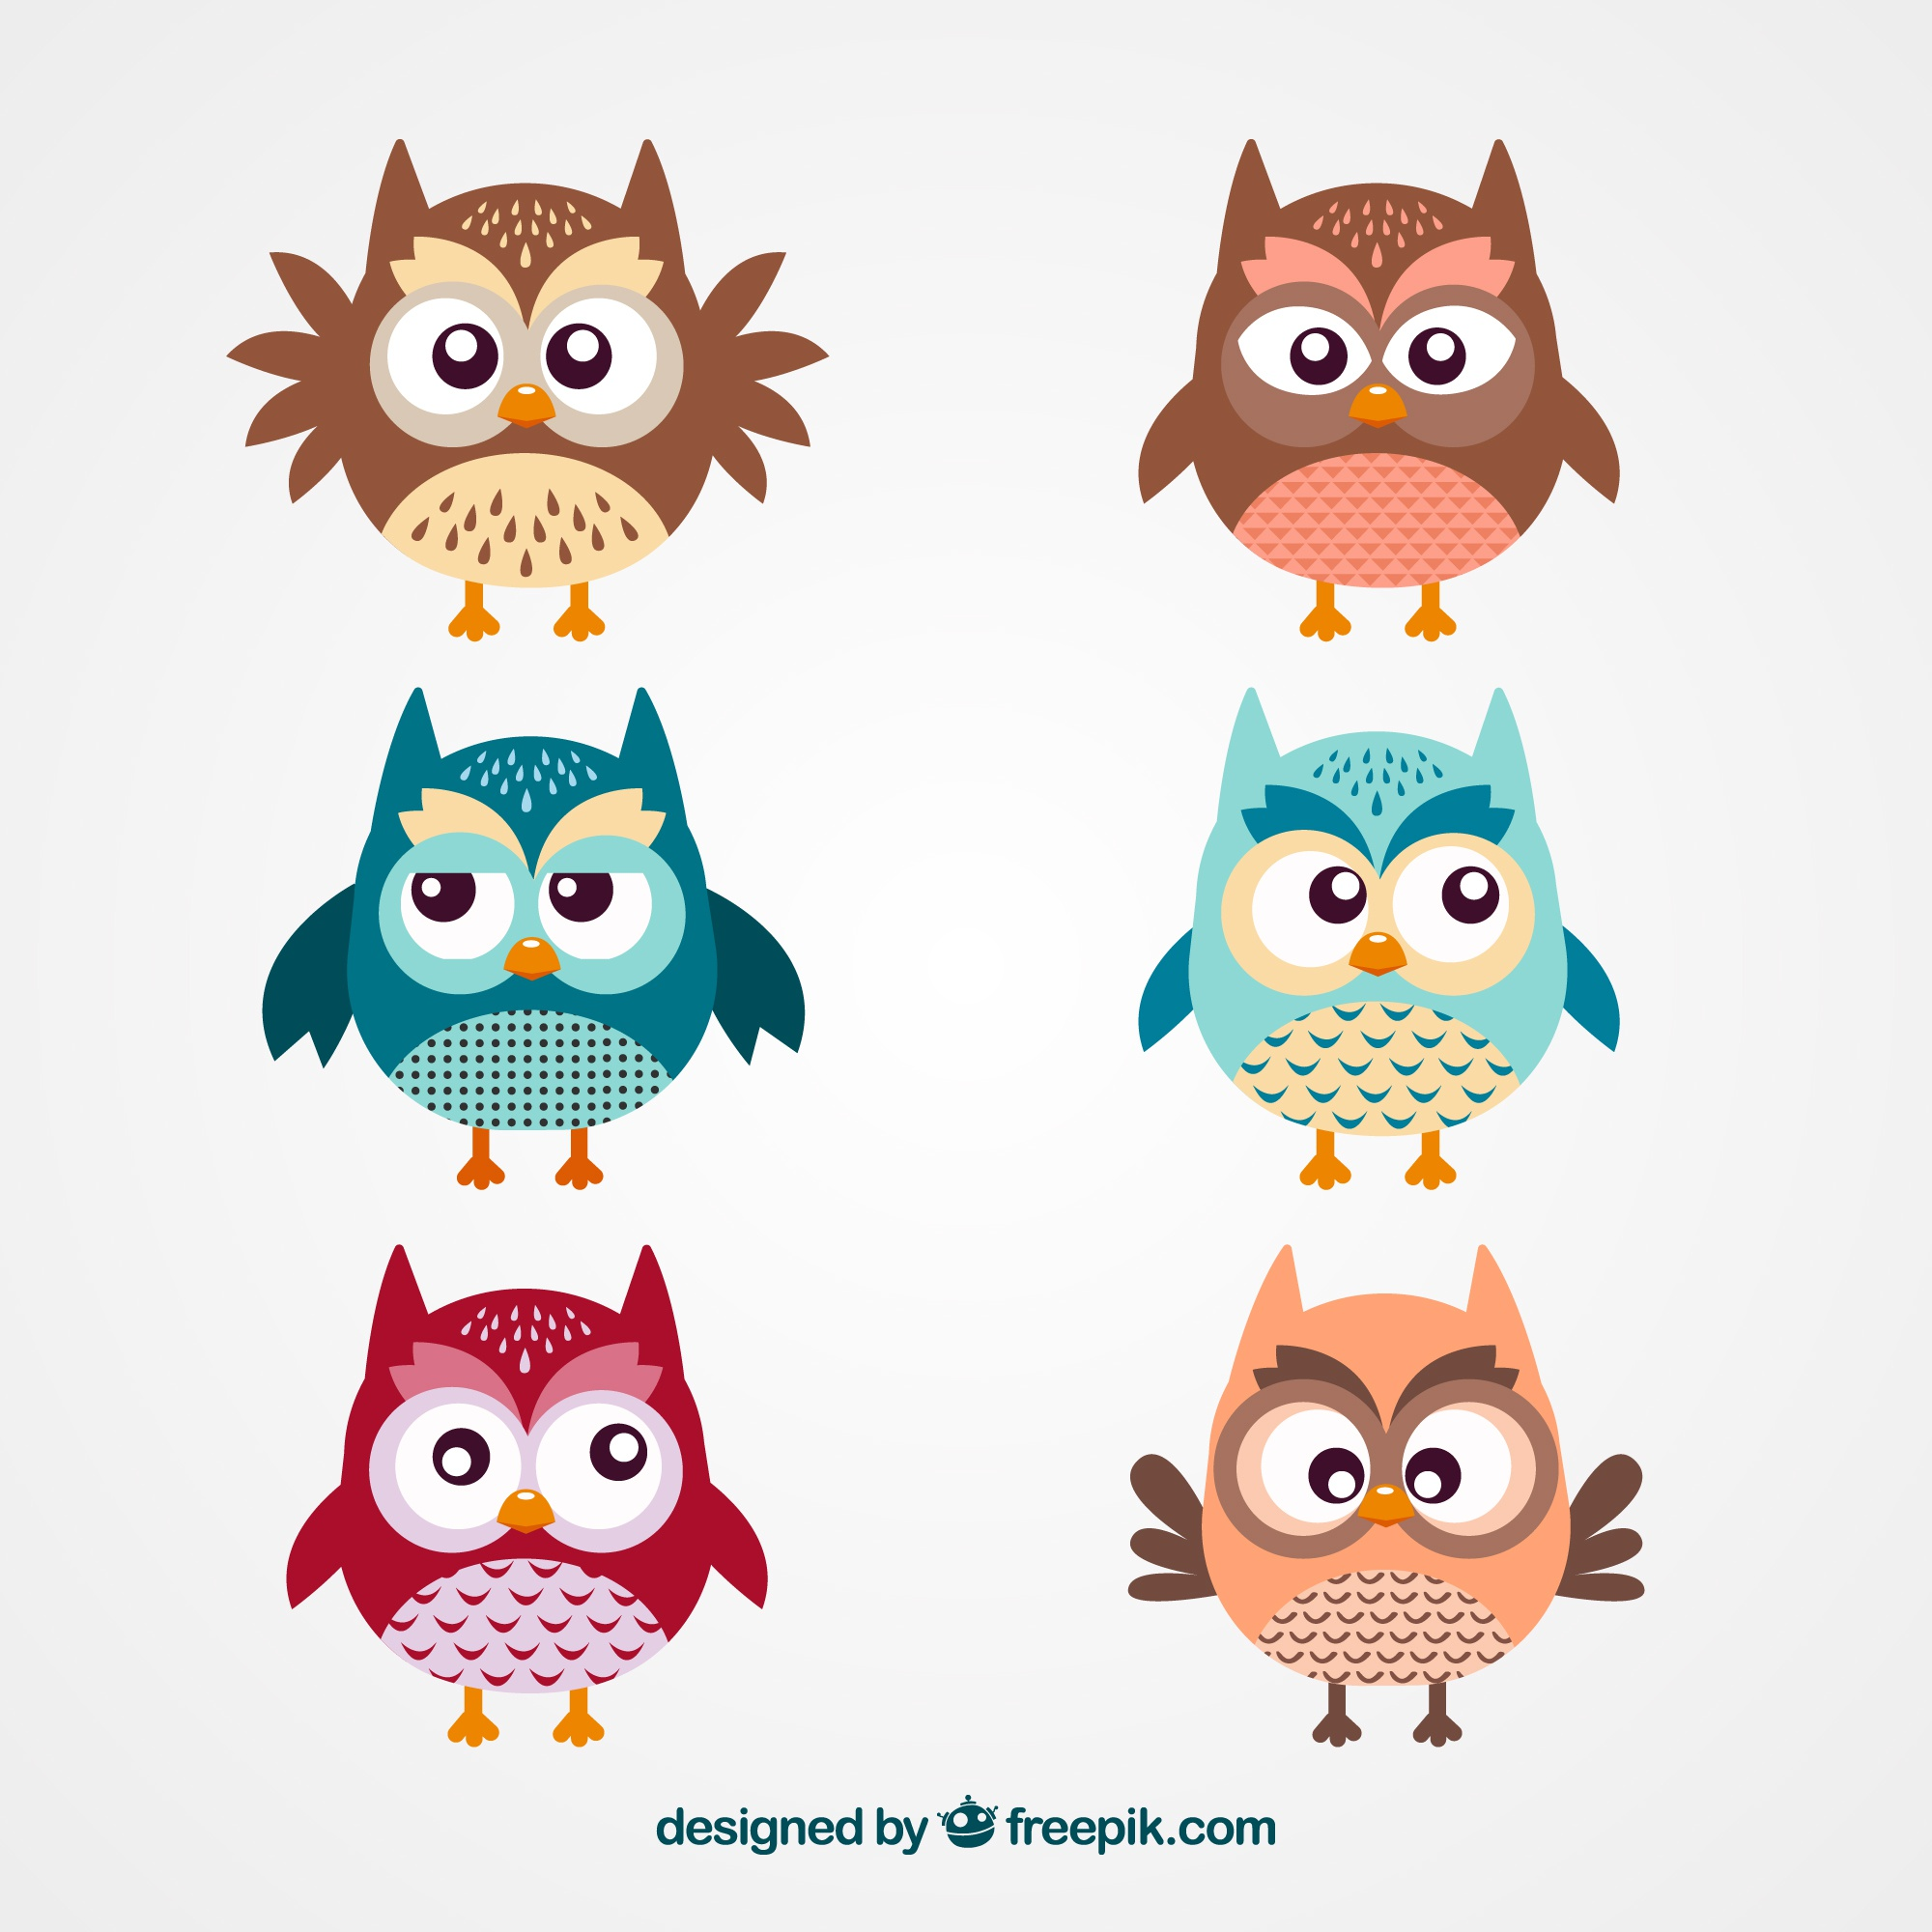 Cute Owl Cartoons